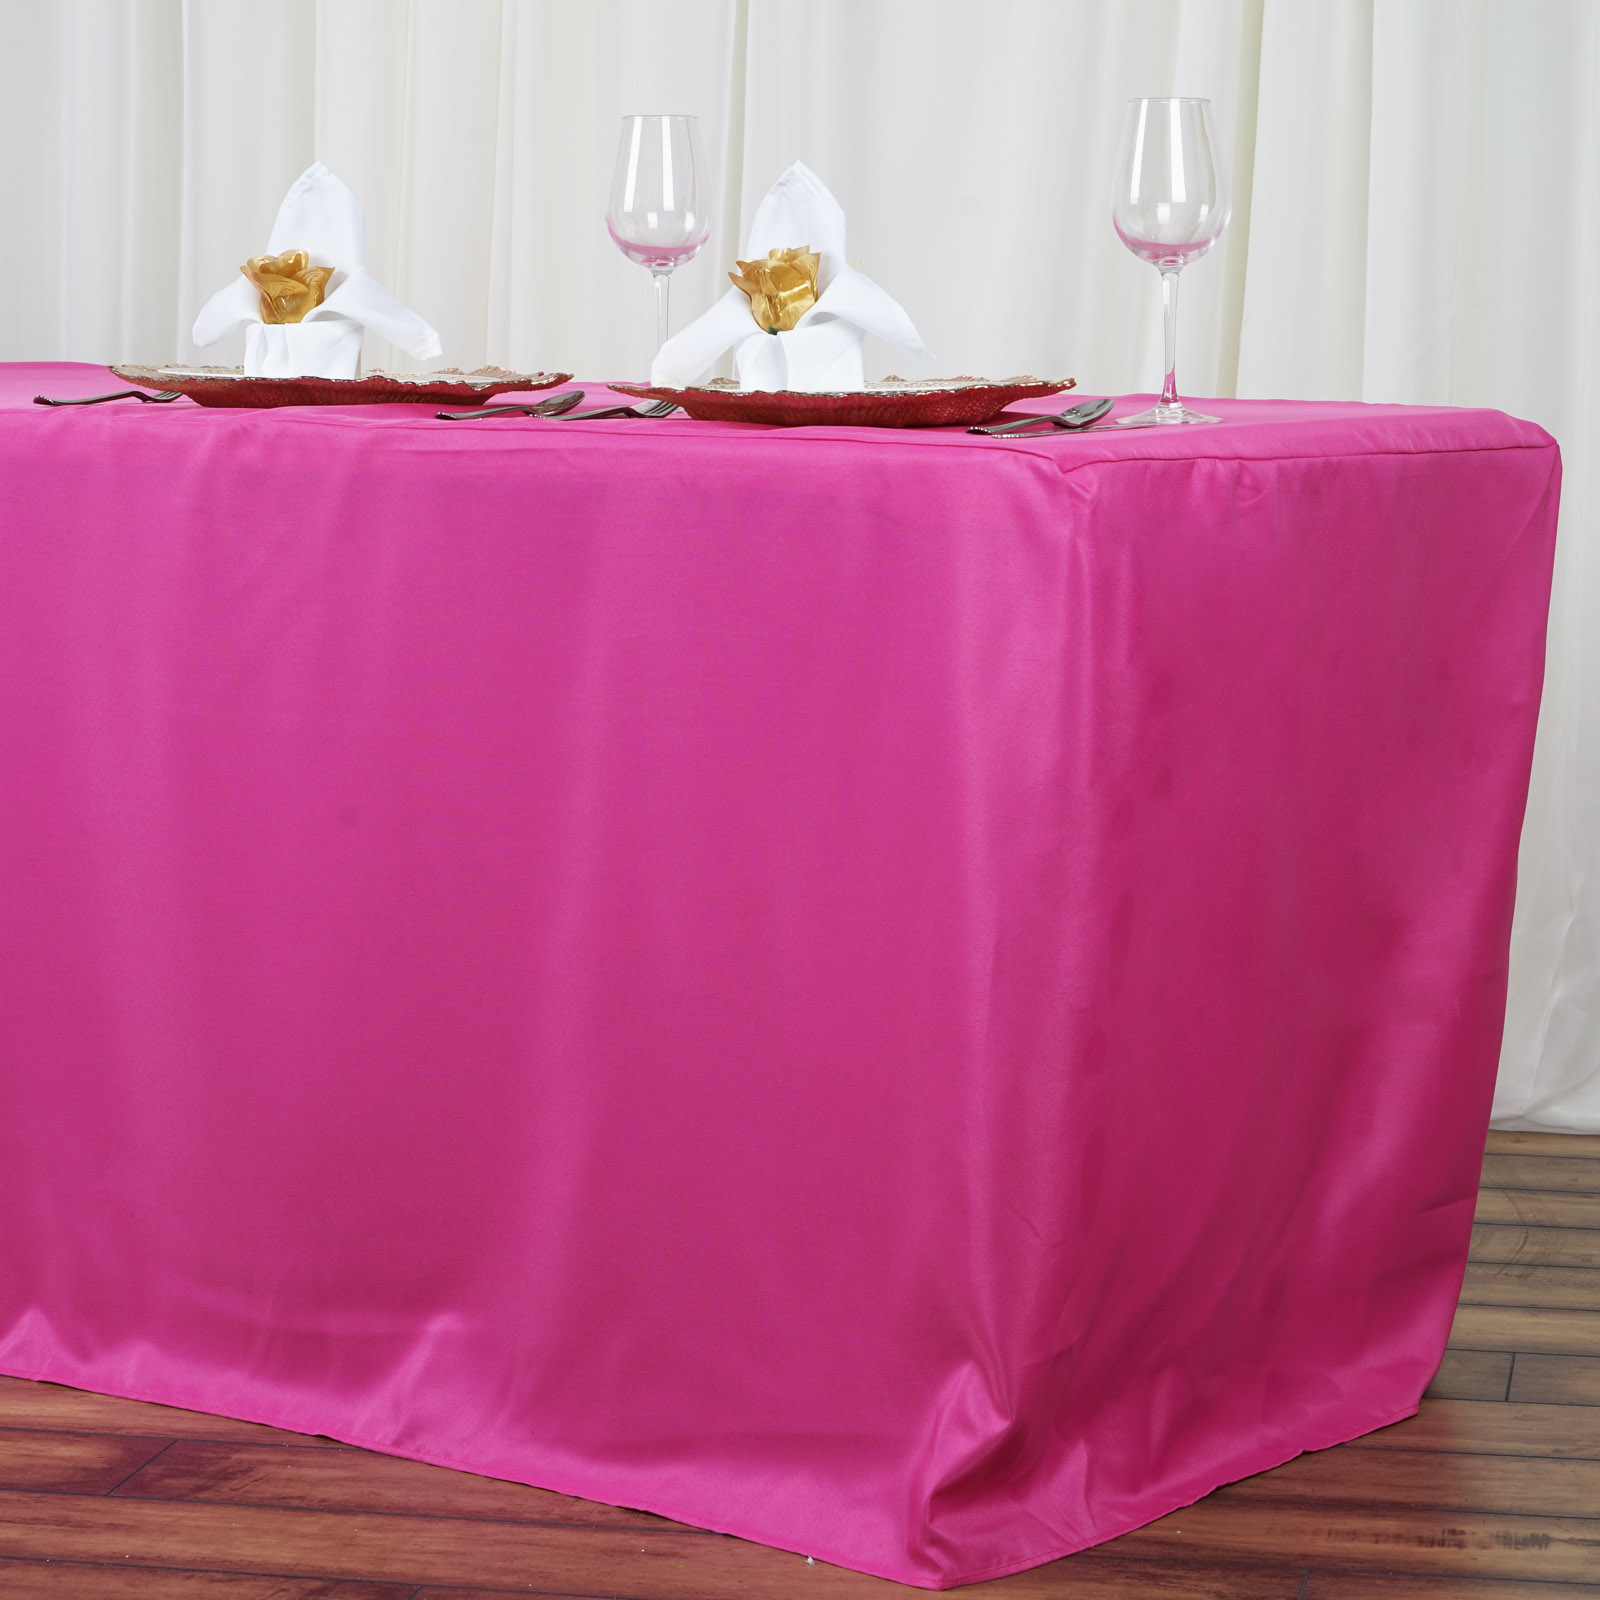 8 feet fitted polyester banquet tablecloth wedding table linens 96 long sale. Black Bedroom Furniture Sets. Home Design Ideas